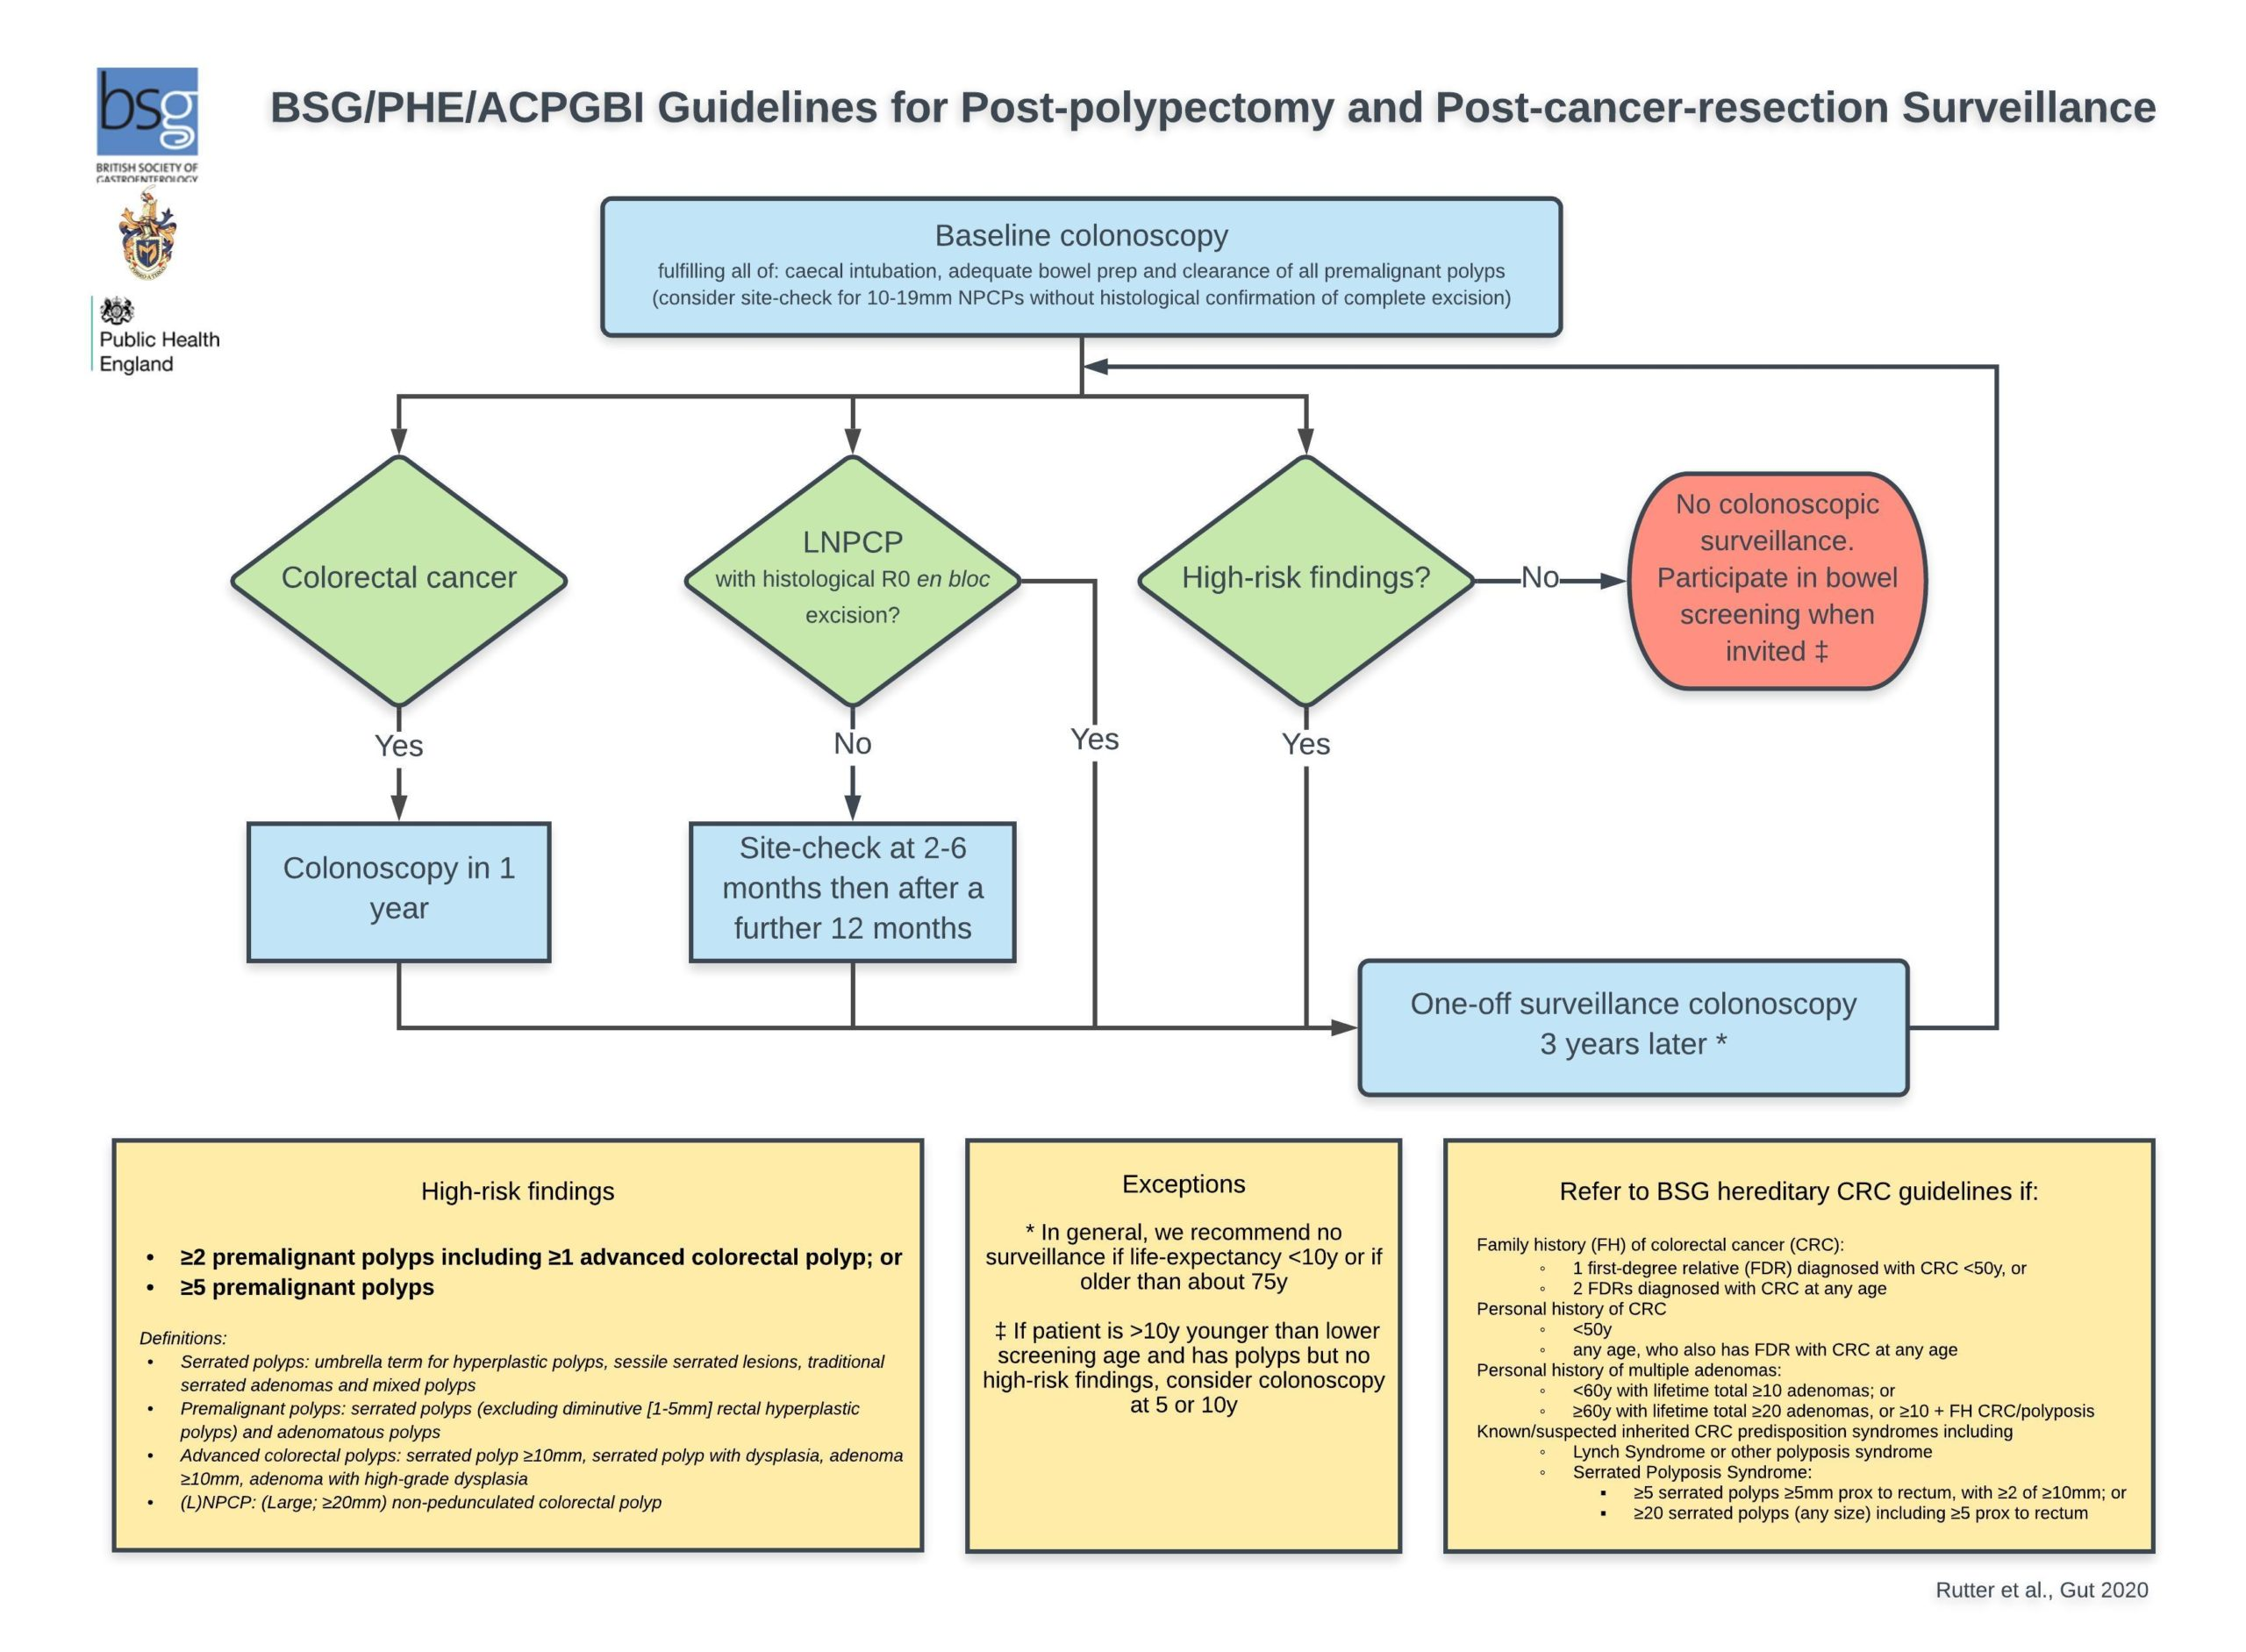 Bsg Acpgbi Phe Post Polypectomy And Post Colorectal Cancer Resection Surveillance Guidelines The British Society Of Gastroenterology